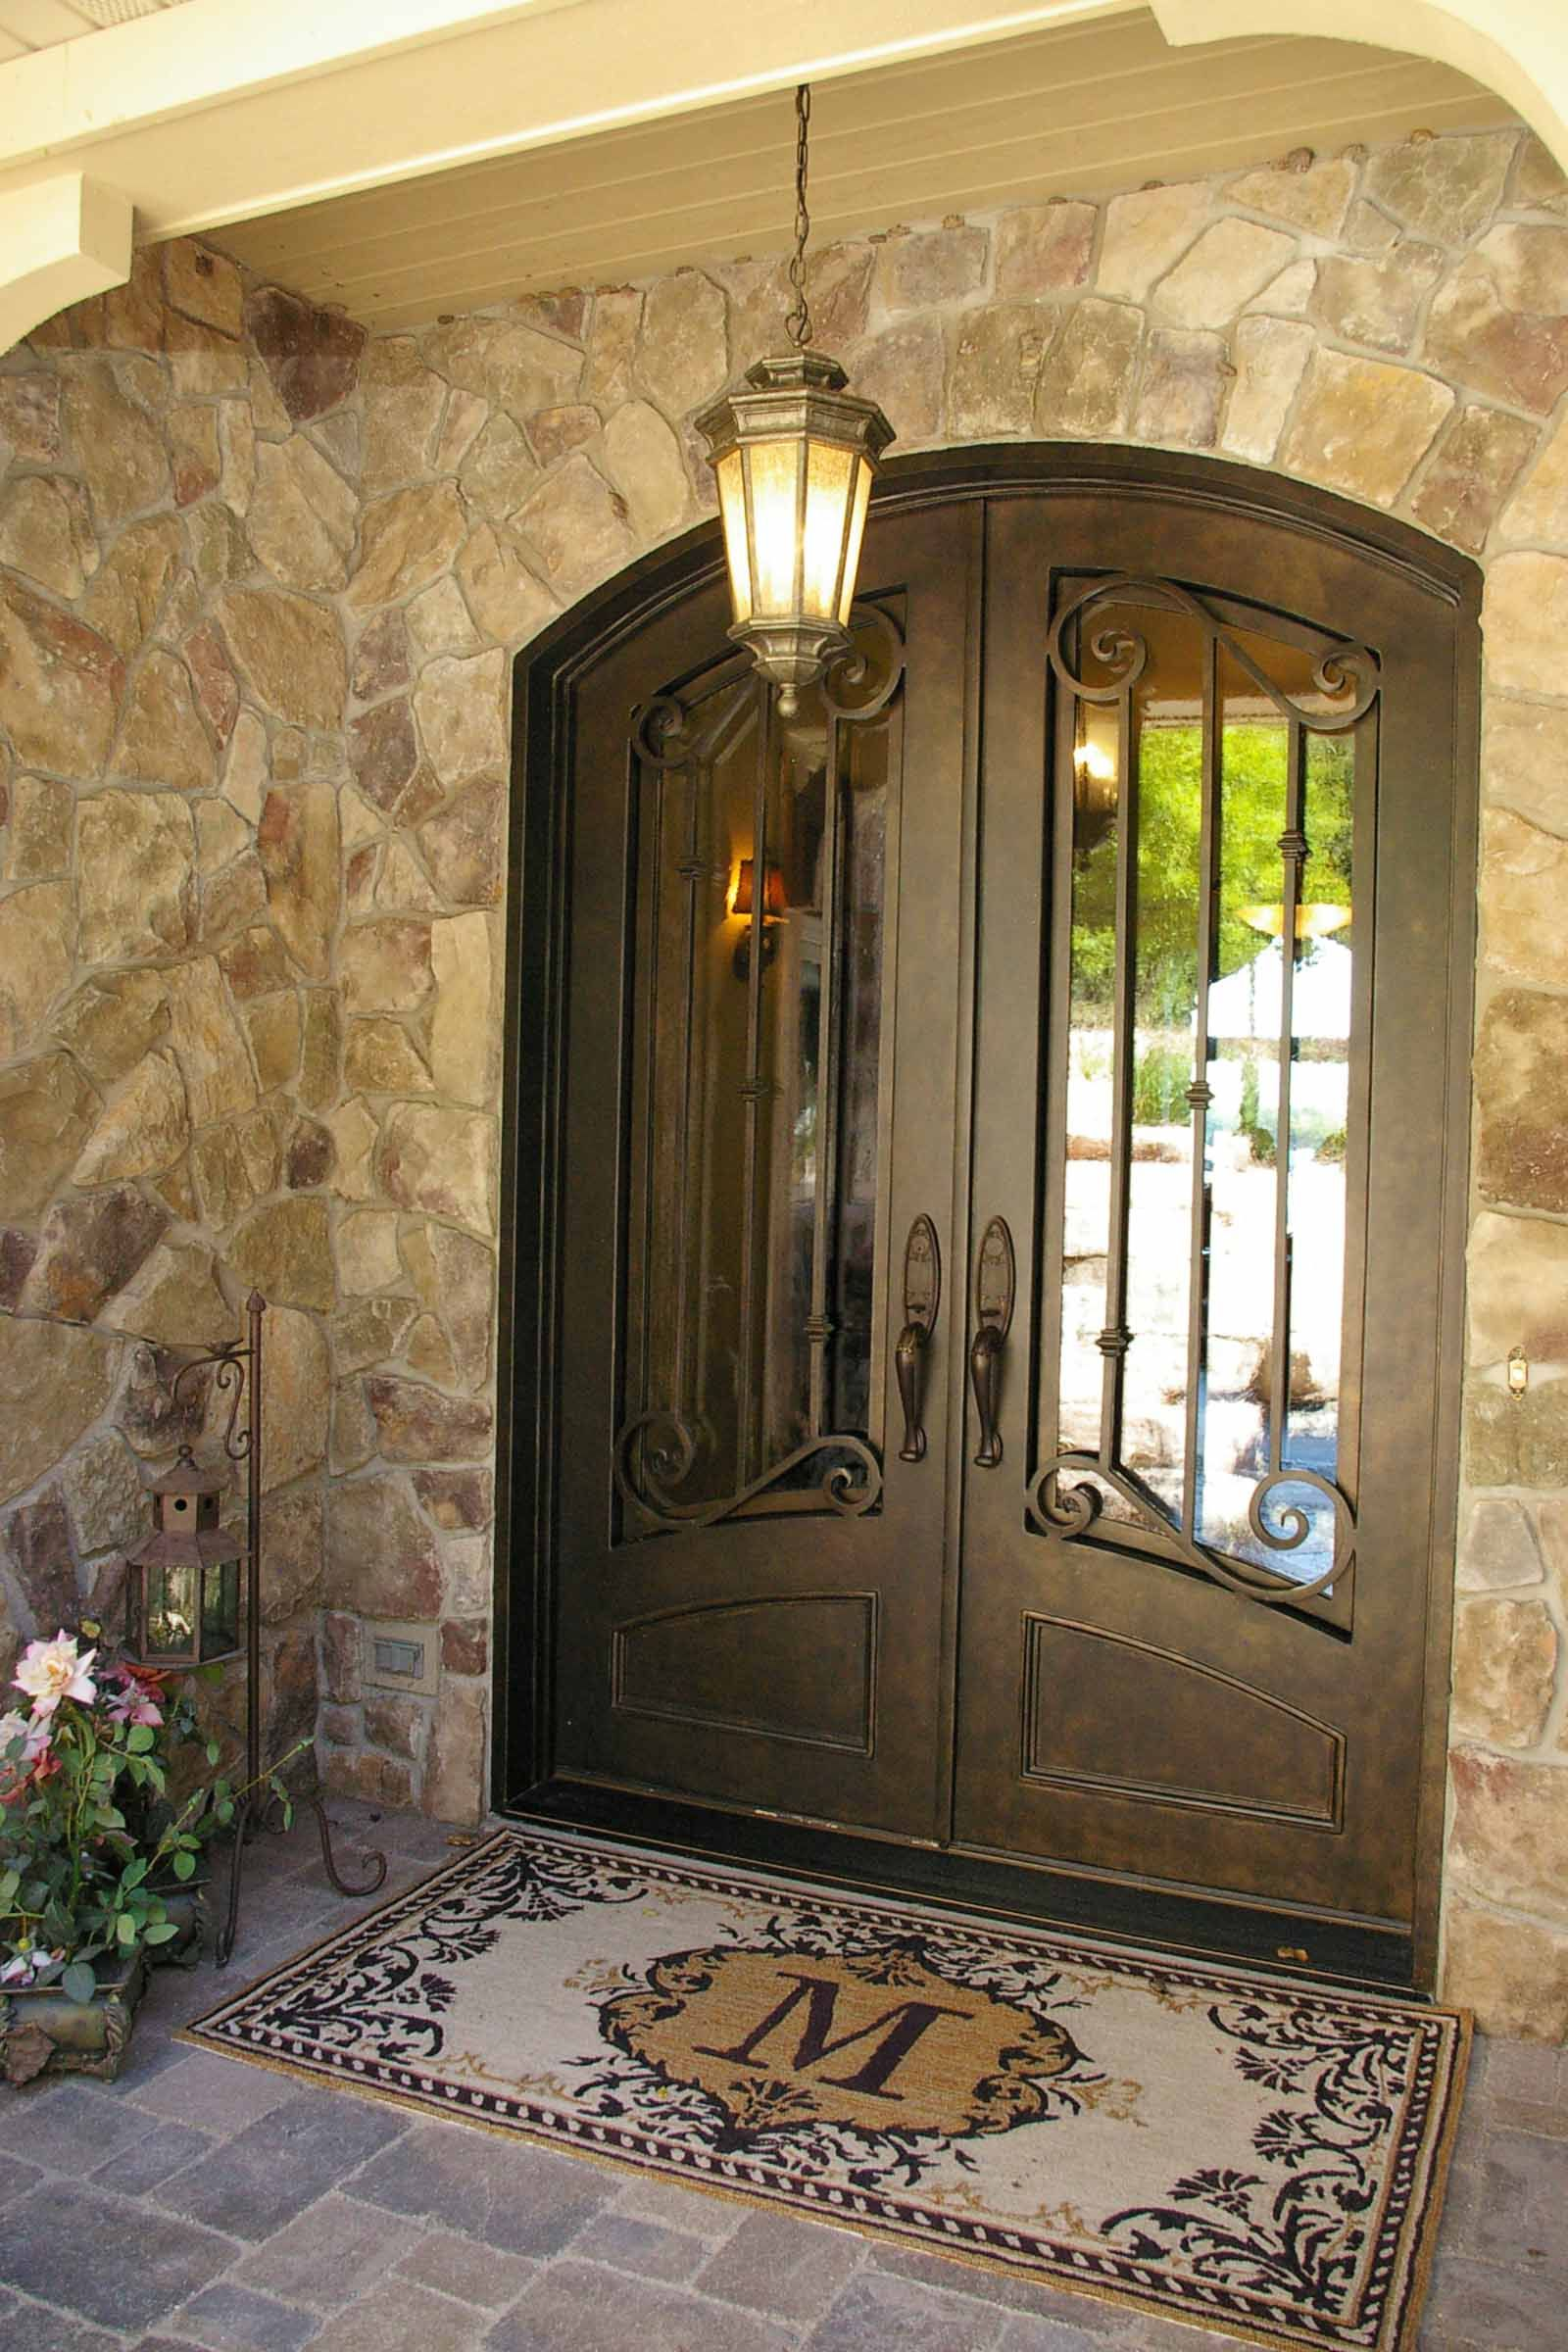 Exceptionnel FRONT DOOR Tuscany Barn Front Door Iron. We Saw Several Homes That Had Iron  Doors And Fell In Love With The Idea